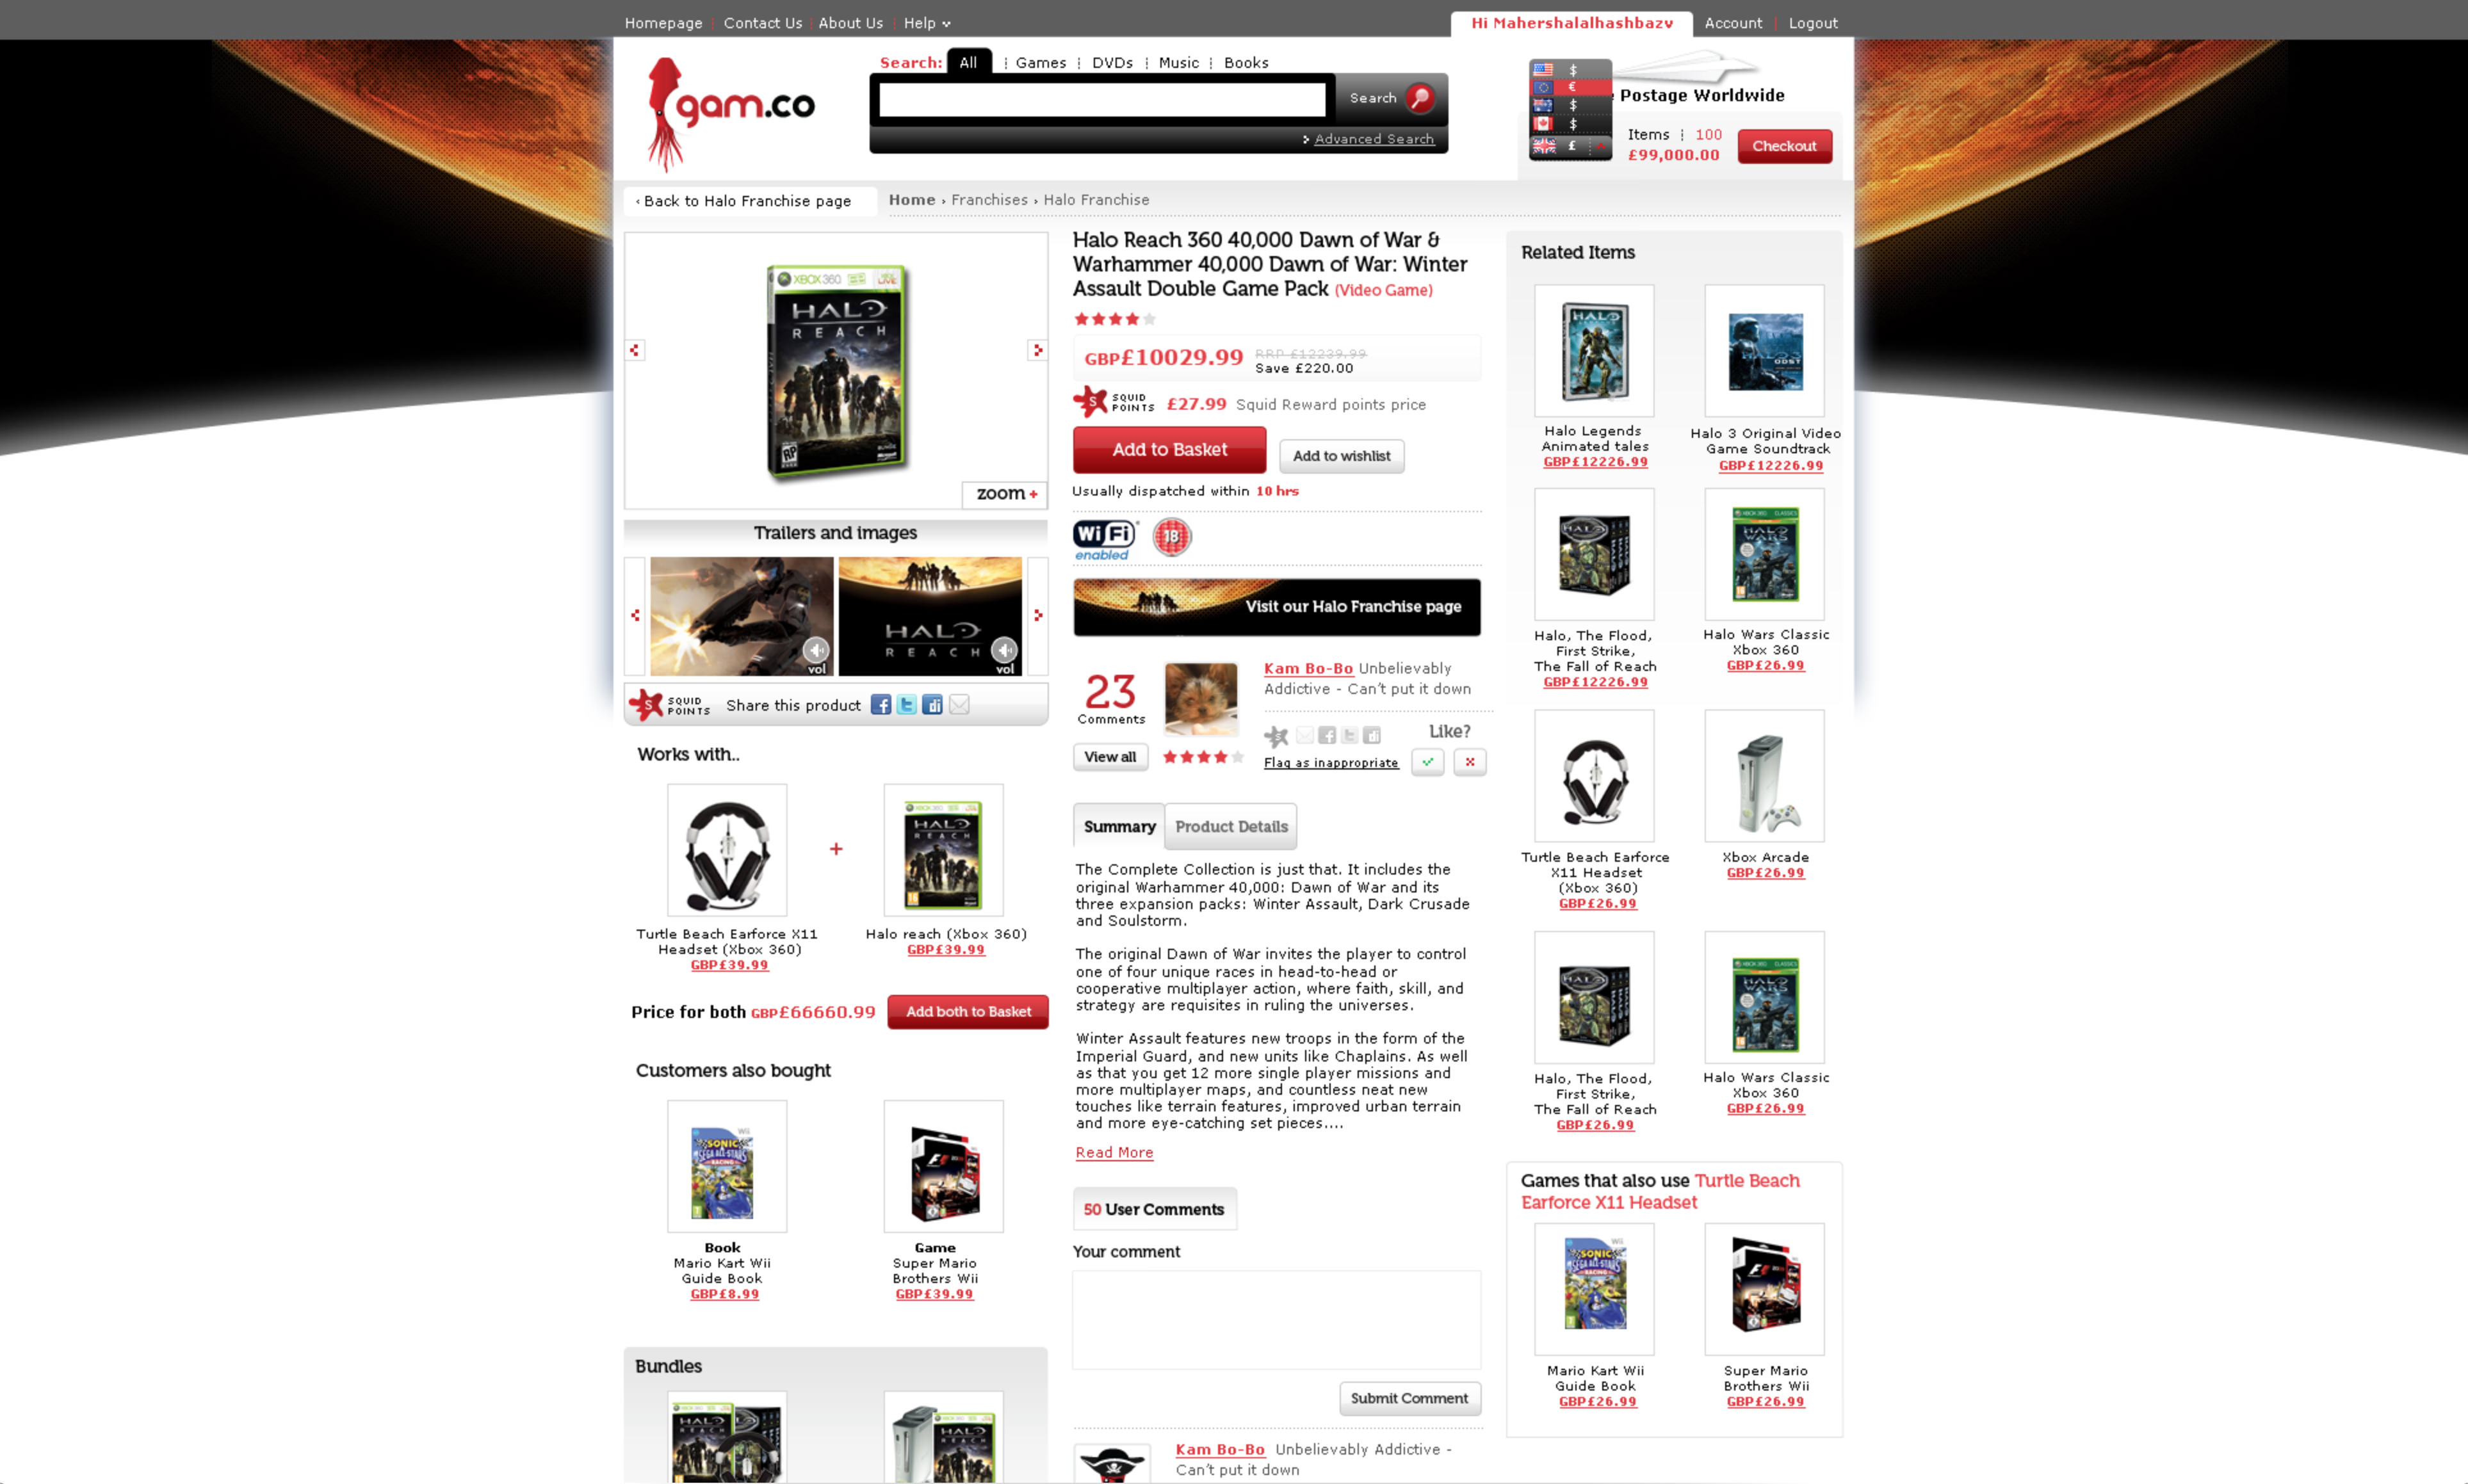 Franchise product page